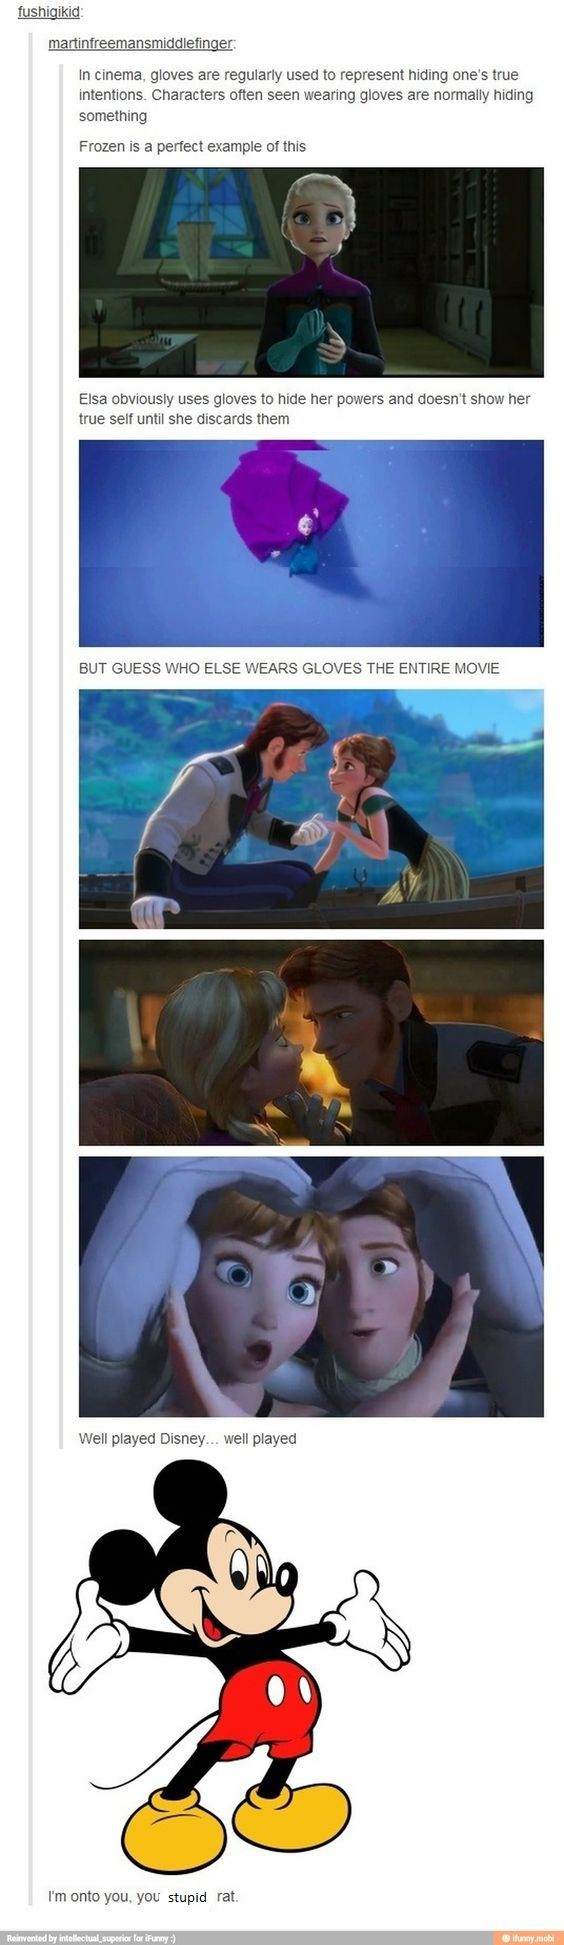 also, hans removes his gloves when revealing his plan to ana